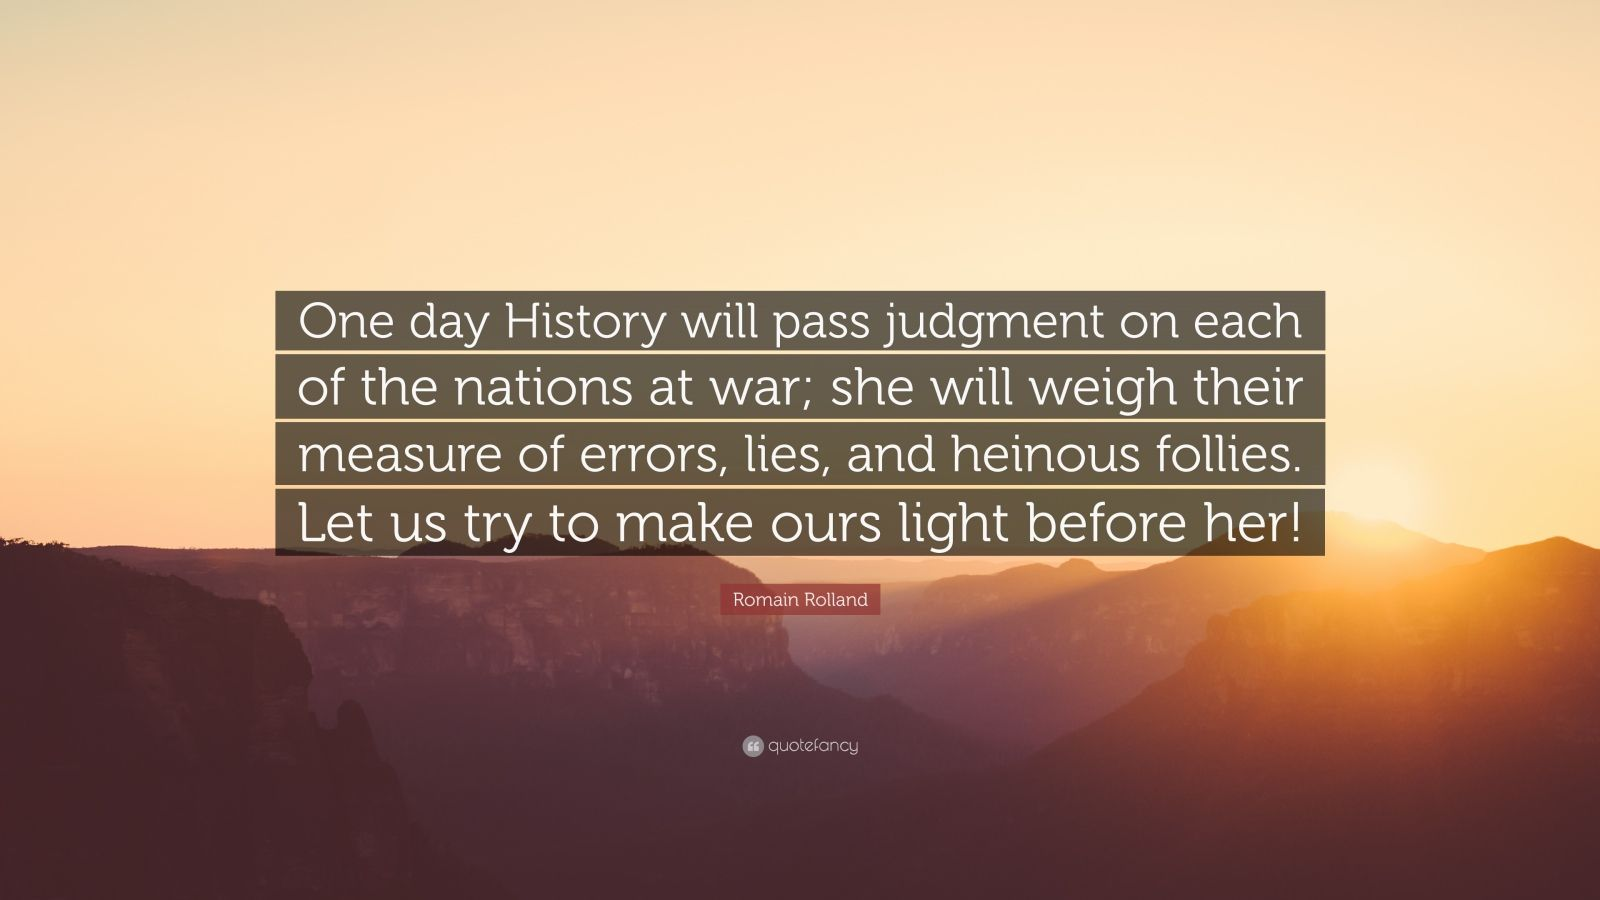 """Romain Rolland Quote: """"One day History will pass judgment on each of the nations at war; she will weigh their measure of errors, lies, and heinous follies. Let us try to make ours light before her!"""""""